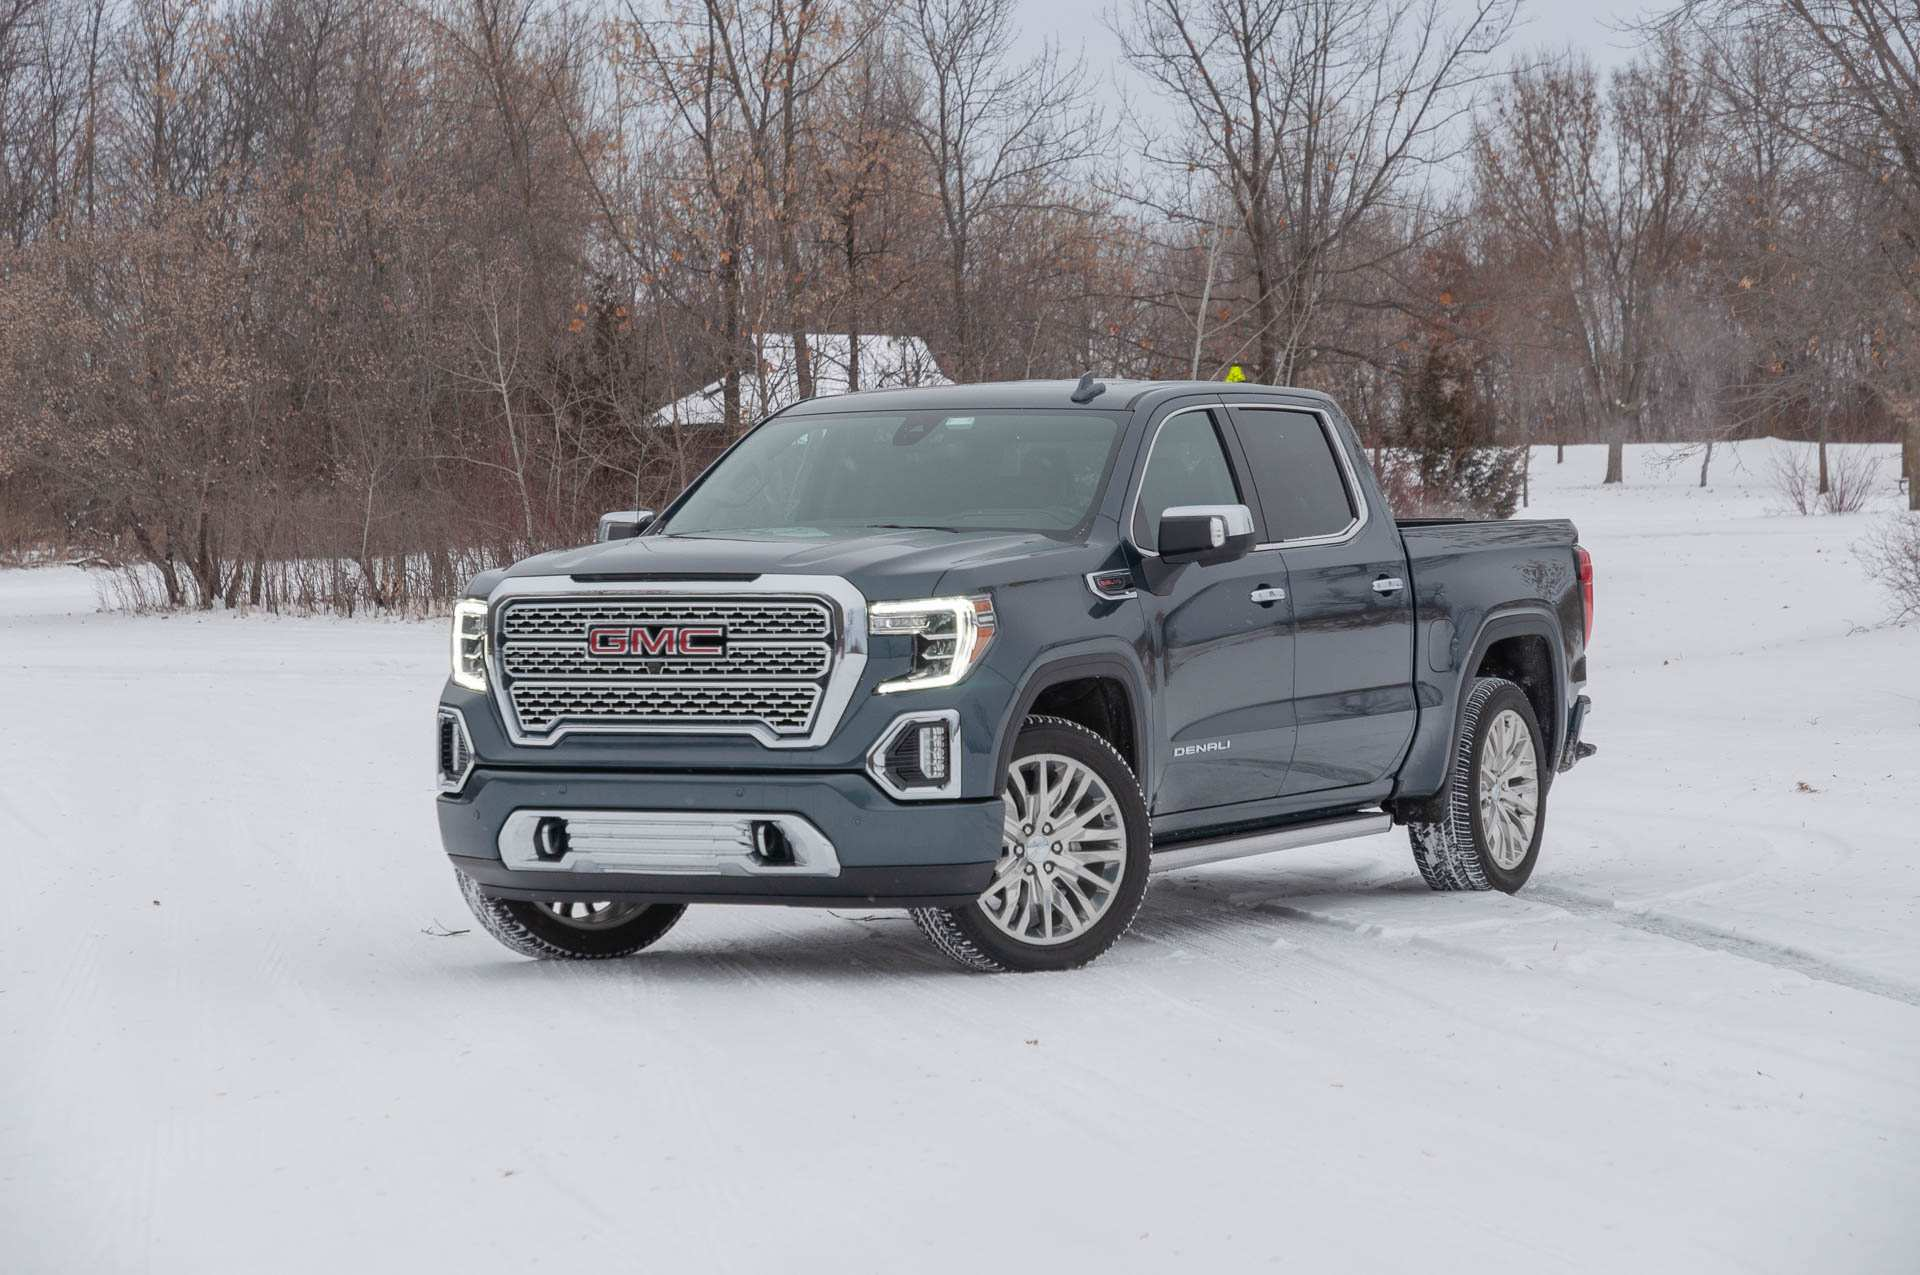 54 All New Tailgate On 2019 Gmc Sierra First Drive Research New by Tailgate On 2019 Gmc Sierra First Drive